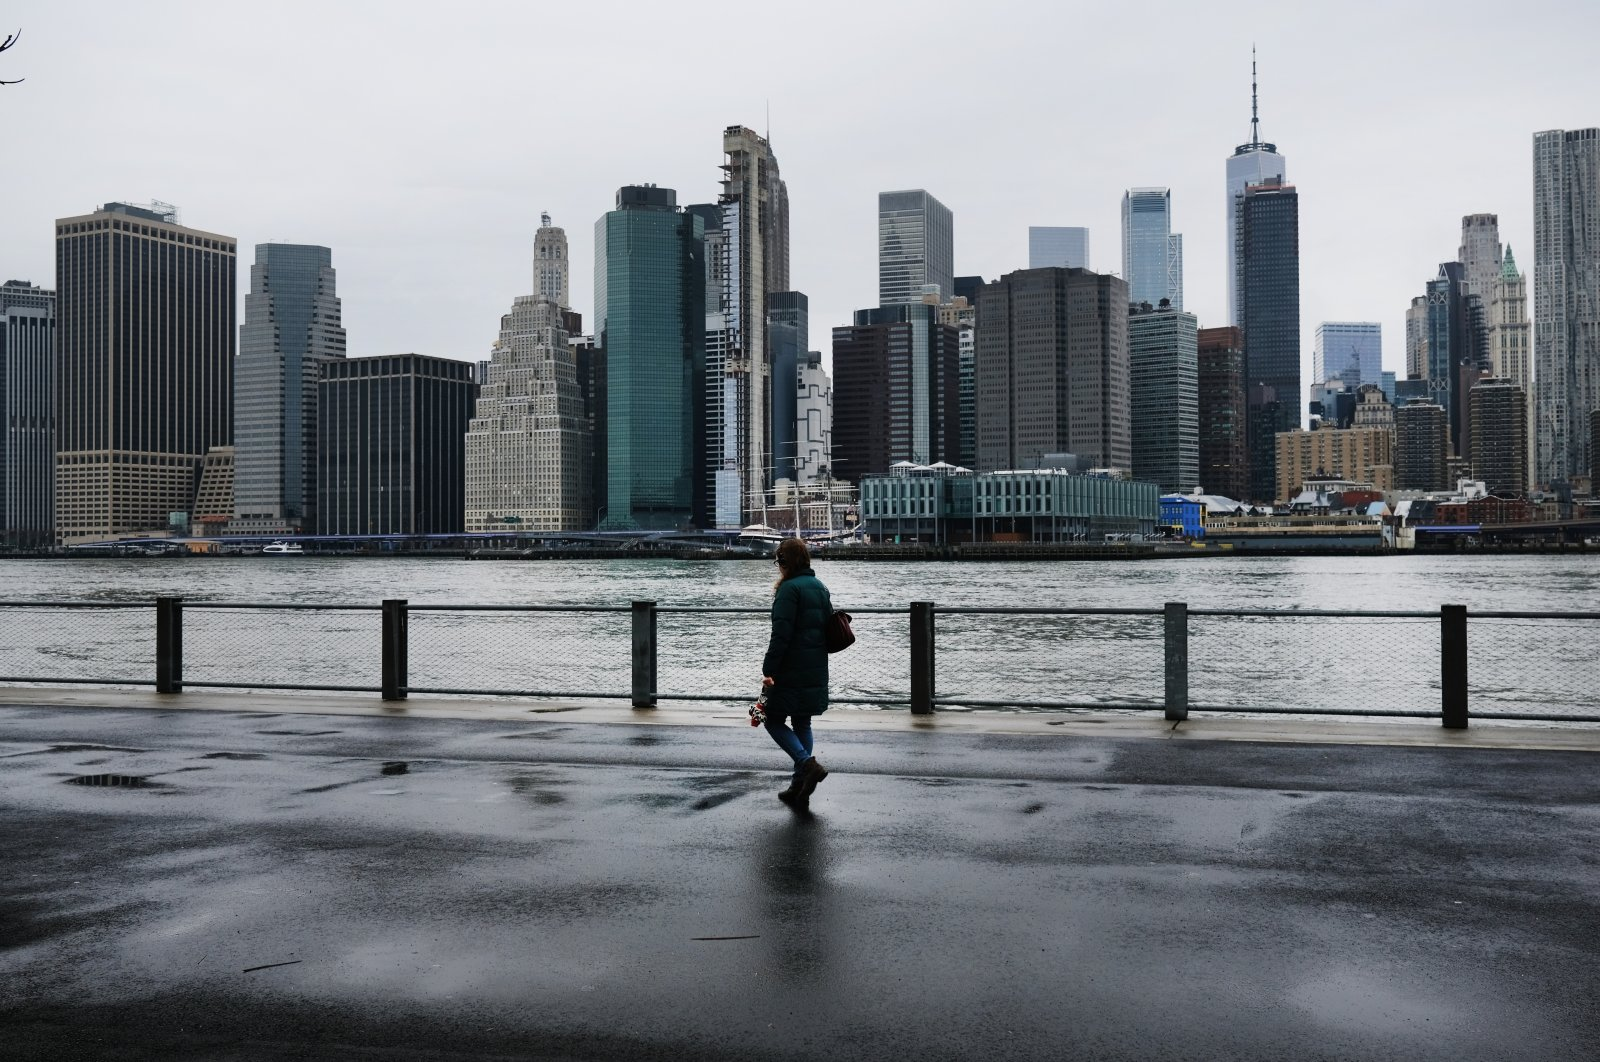 People walk in Brooklyn with lower Manhattan looming in the background amid the coronavirus pandemic, New York City, New York, U.S., March 28, 2020. (Photo by Getty Images)